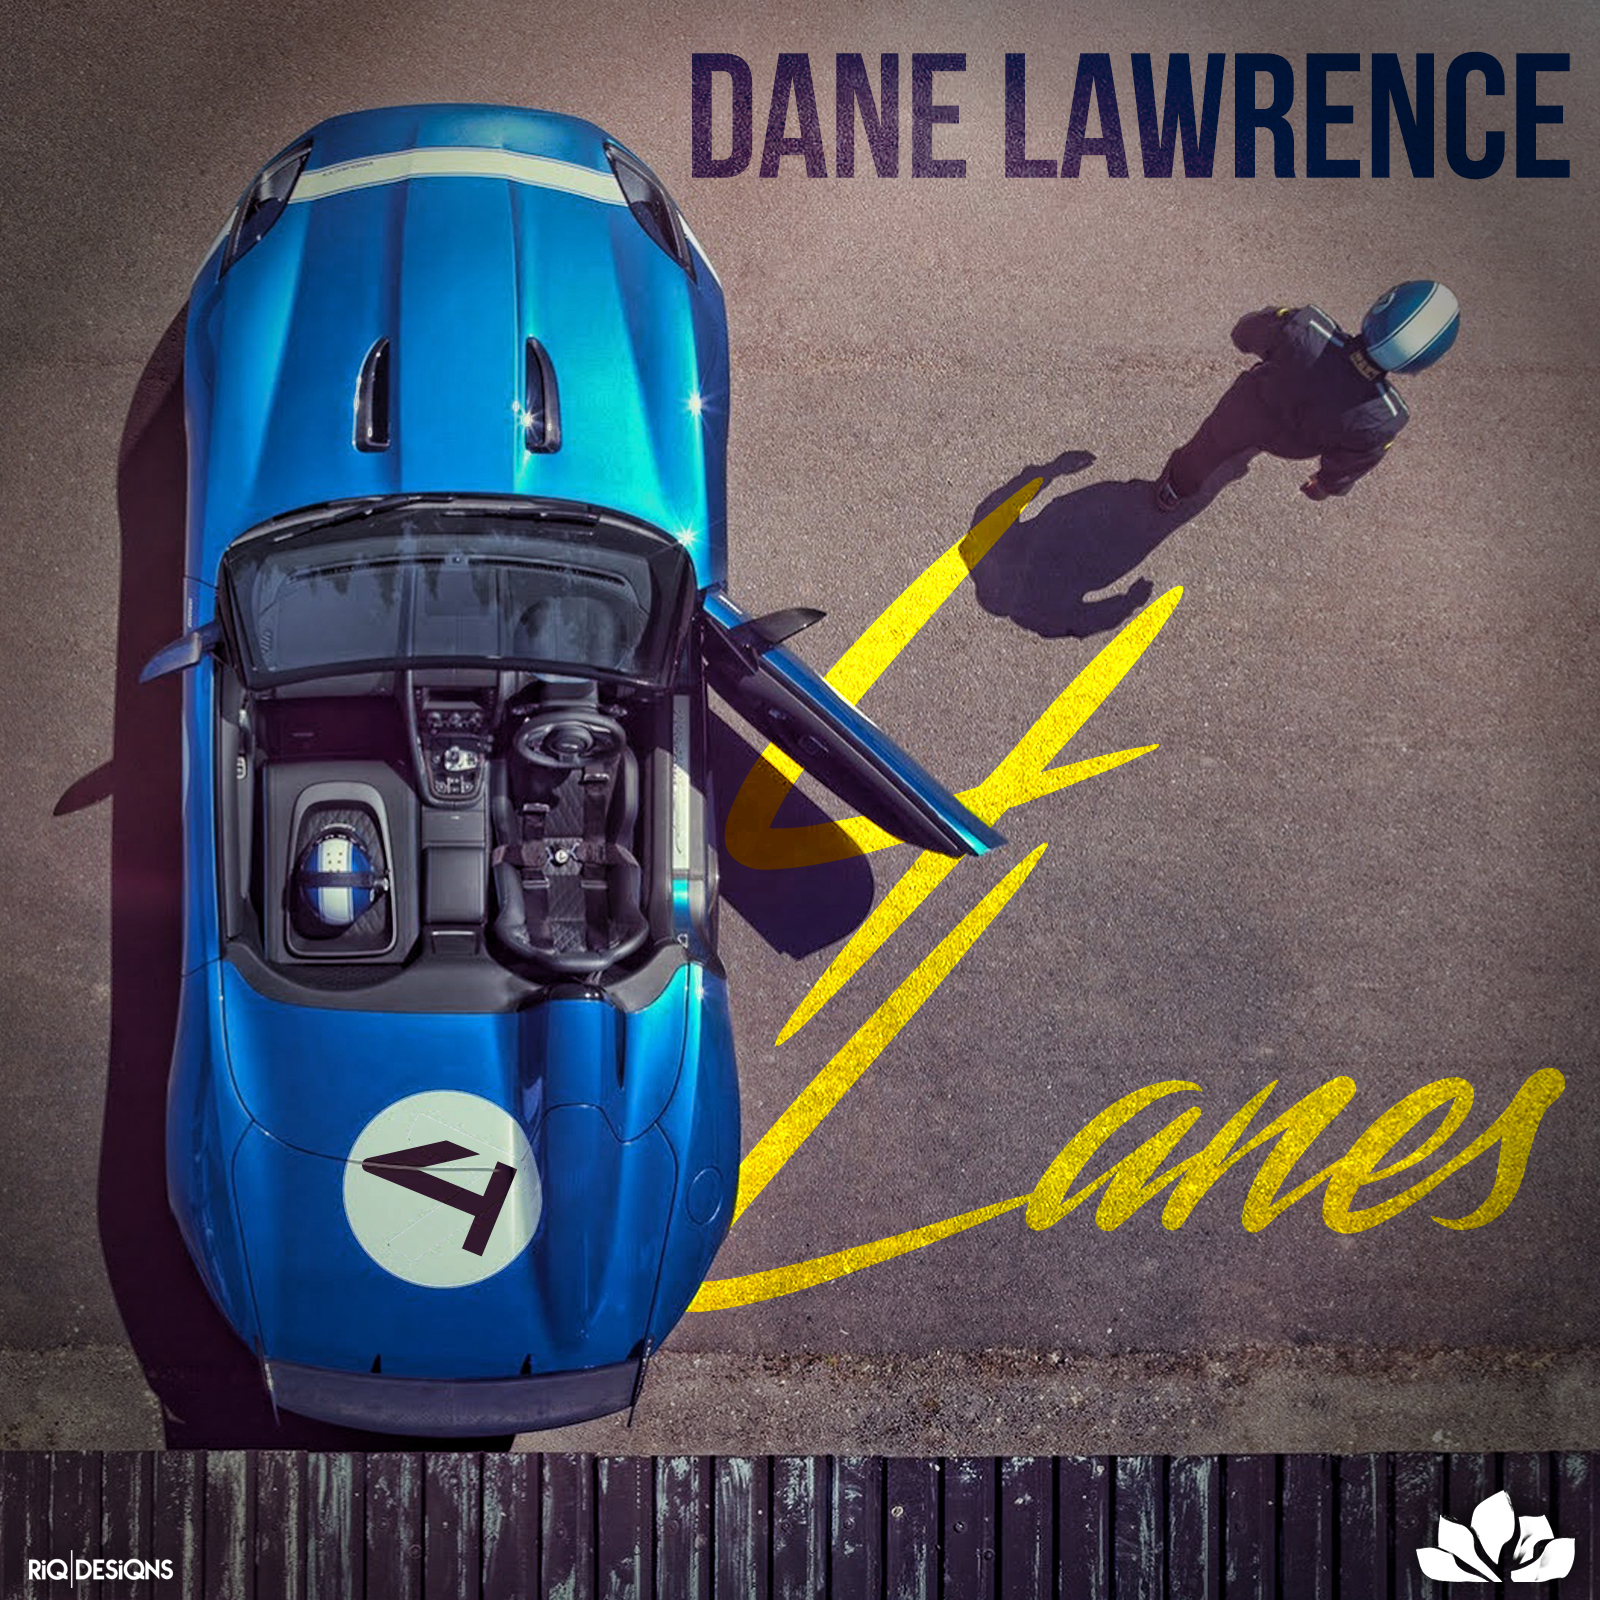 Dane Lawrence - 4Lanes